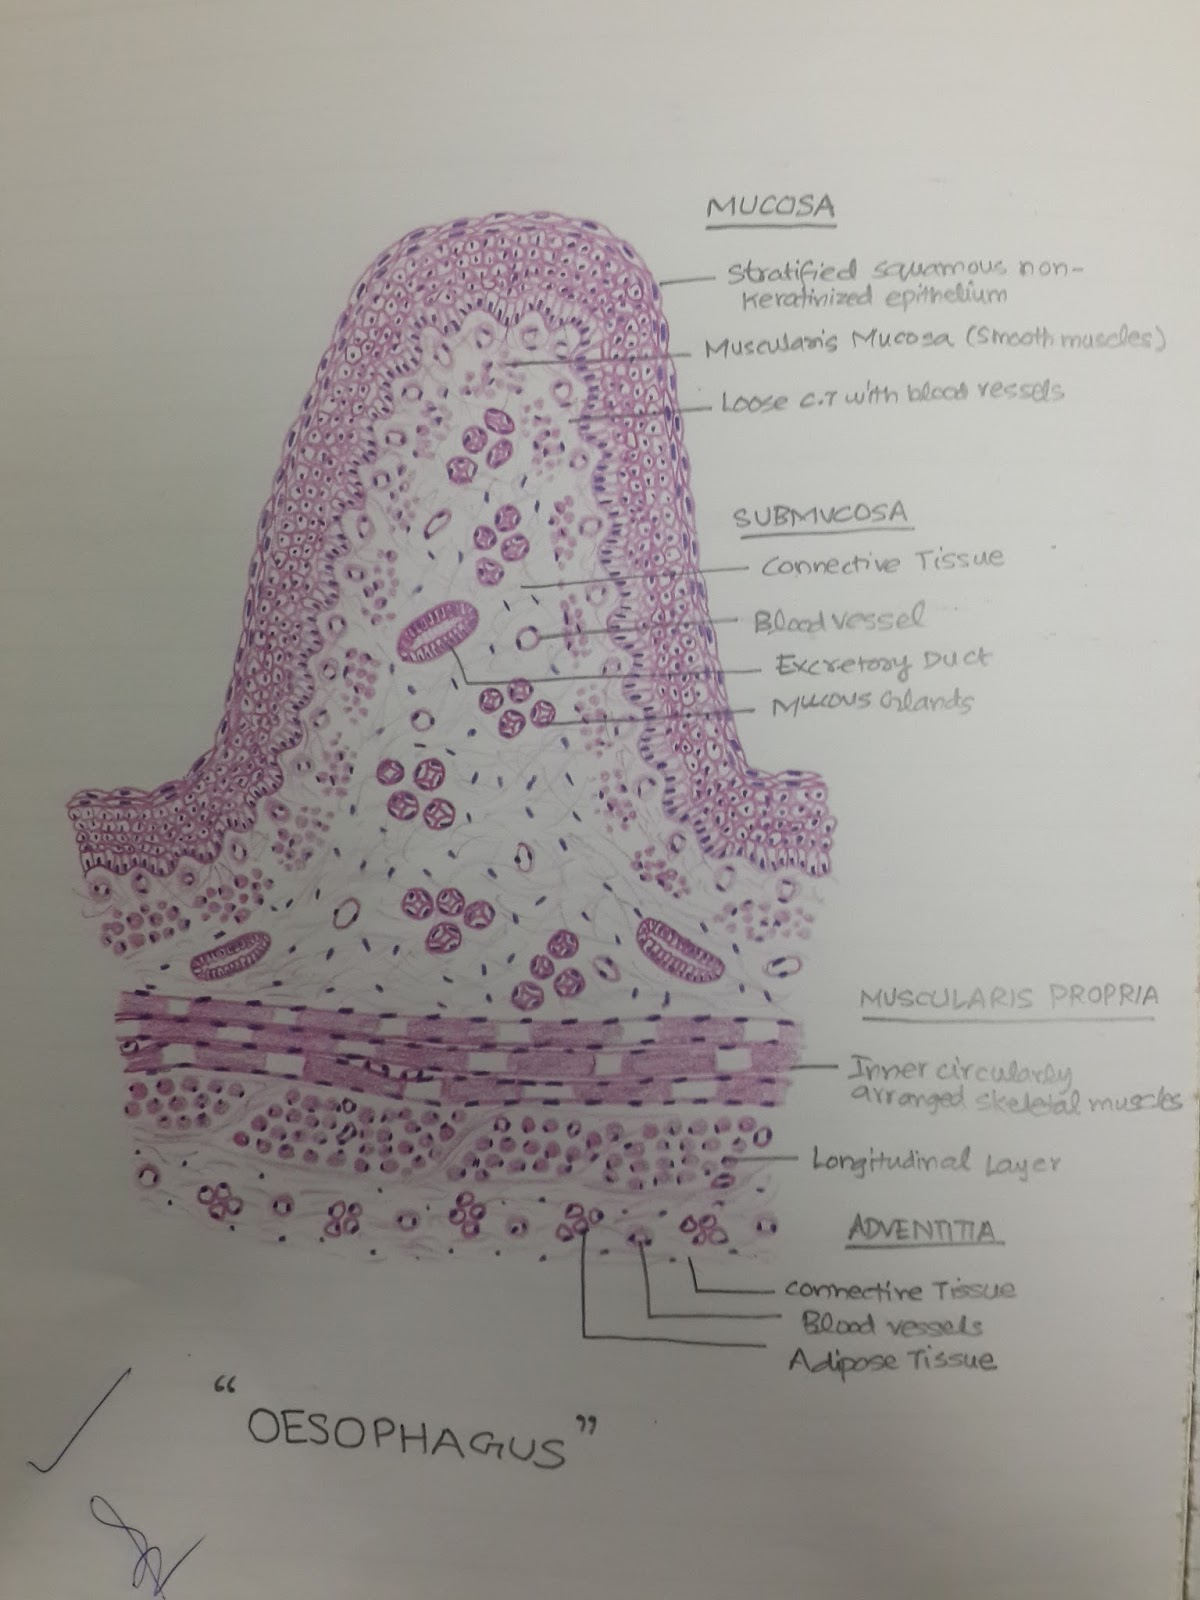 Histology Diagrams For 2nd Year Mbbs